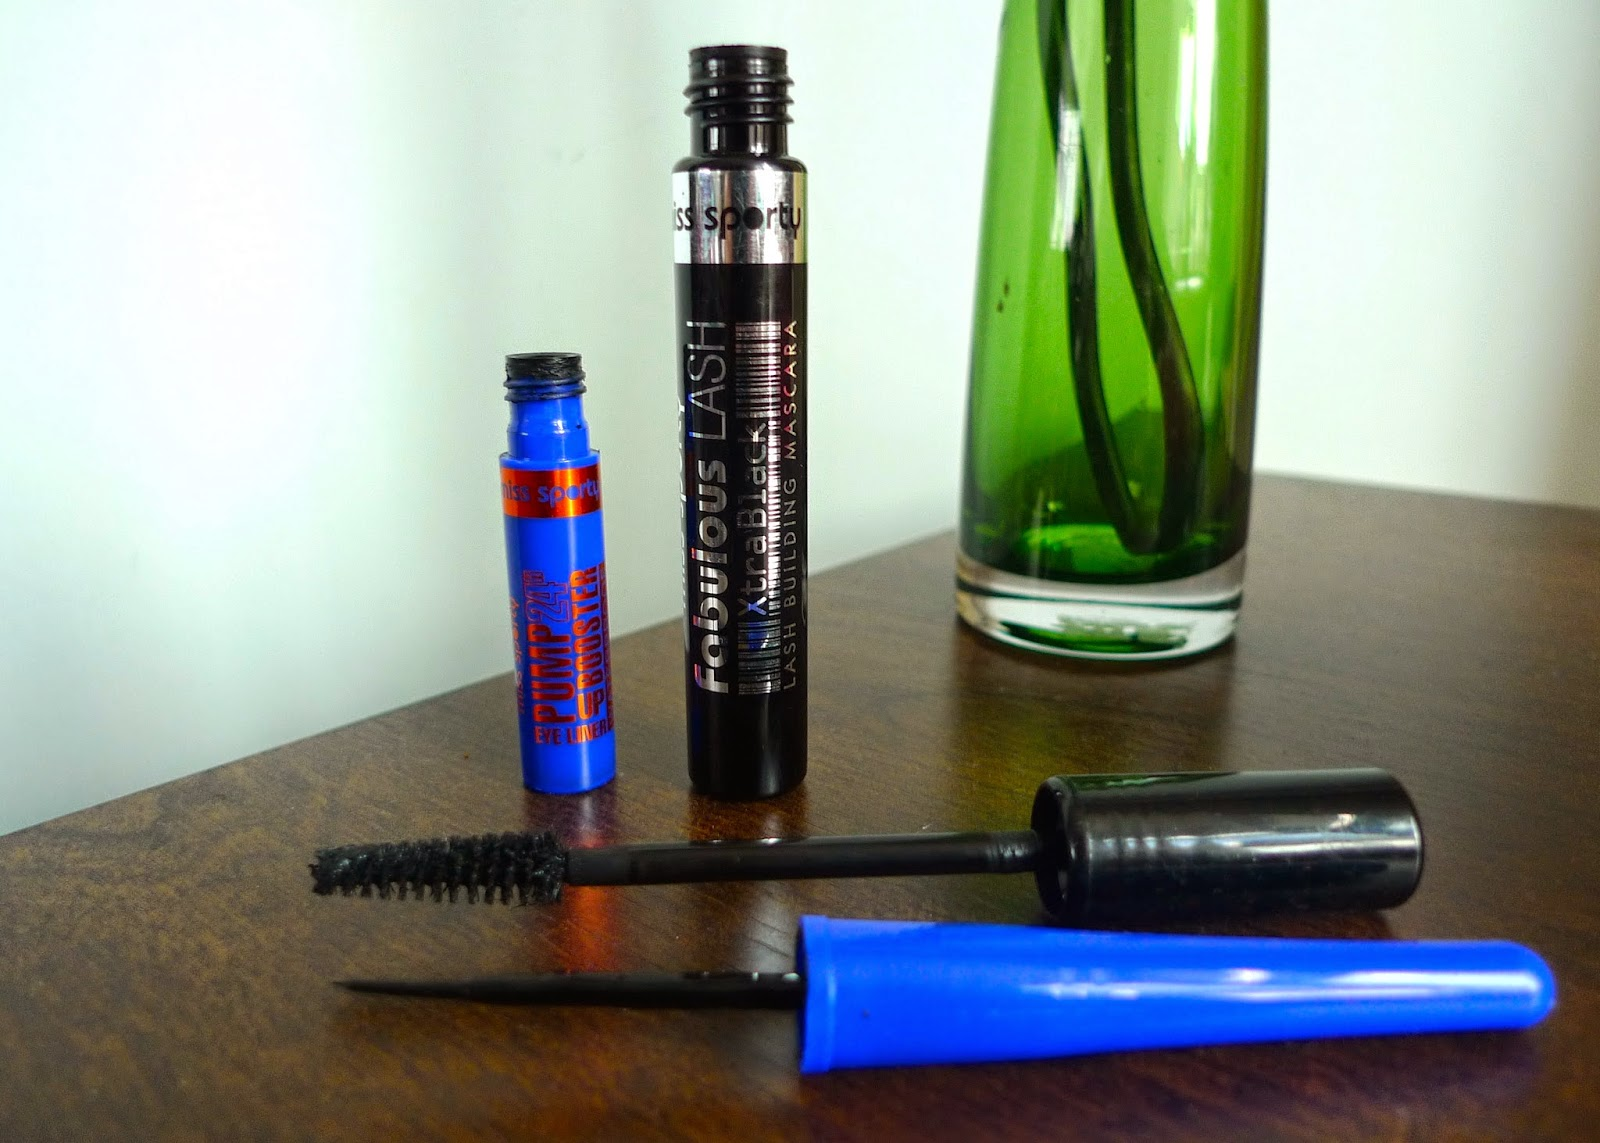 A review of Miss Sporty's Pump Up Booster Waterproof eyeliner and Fabulous Lash Mascara